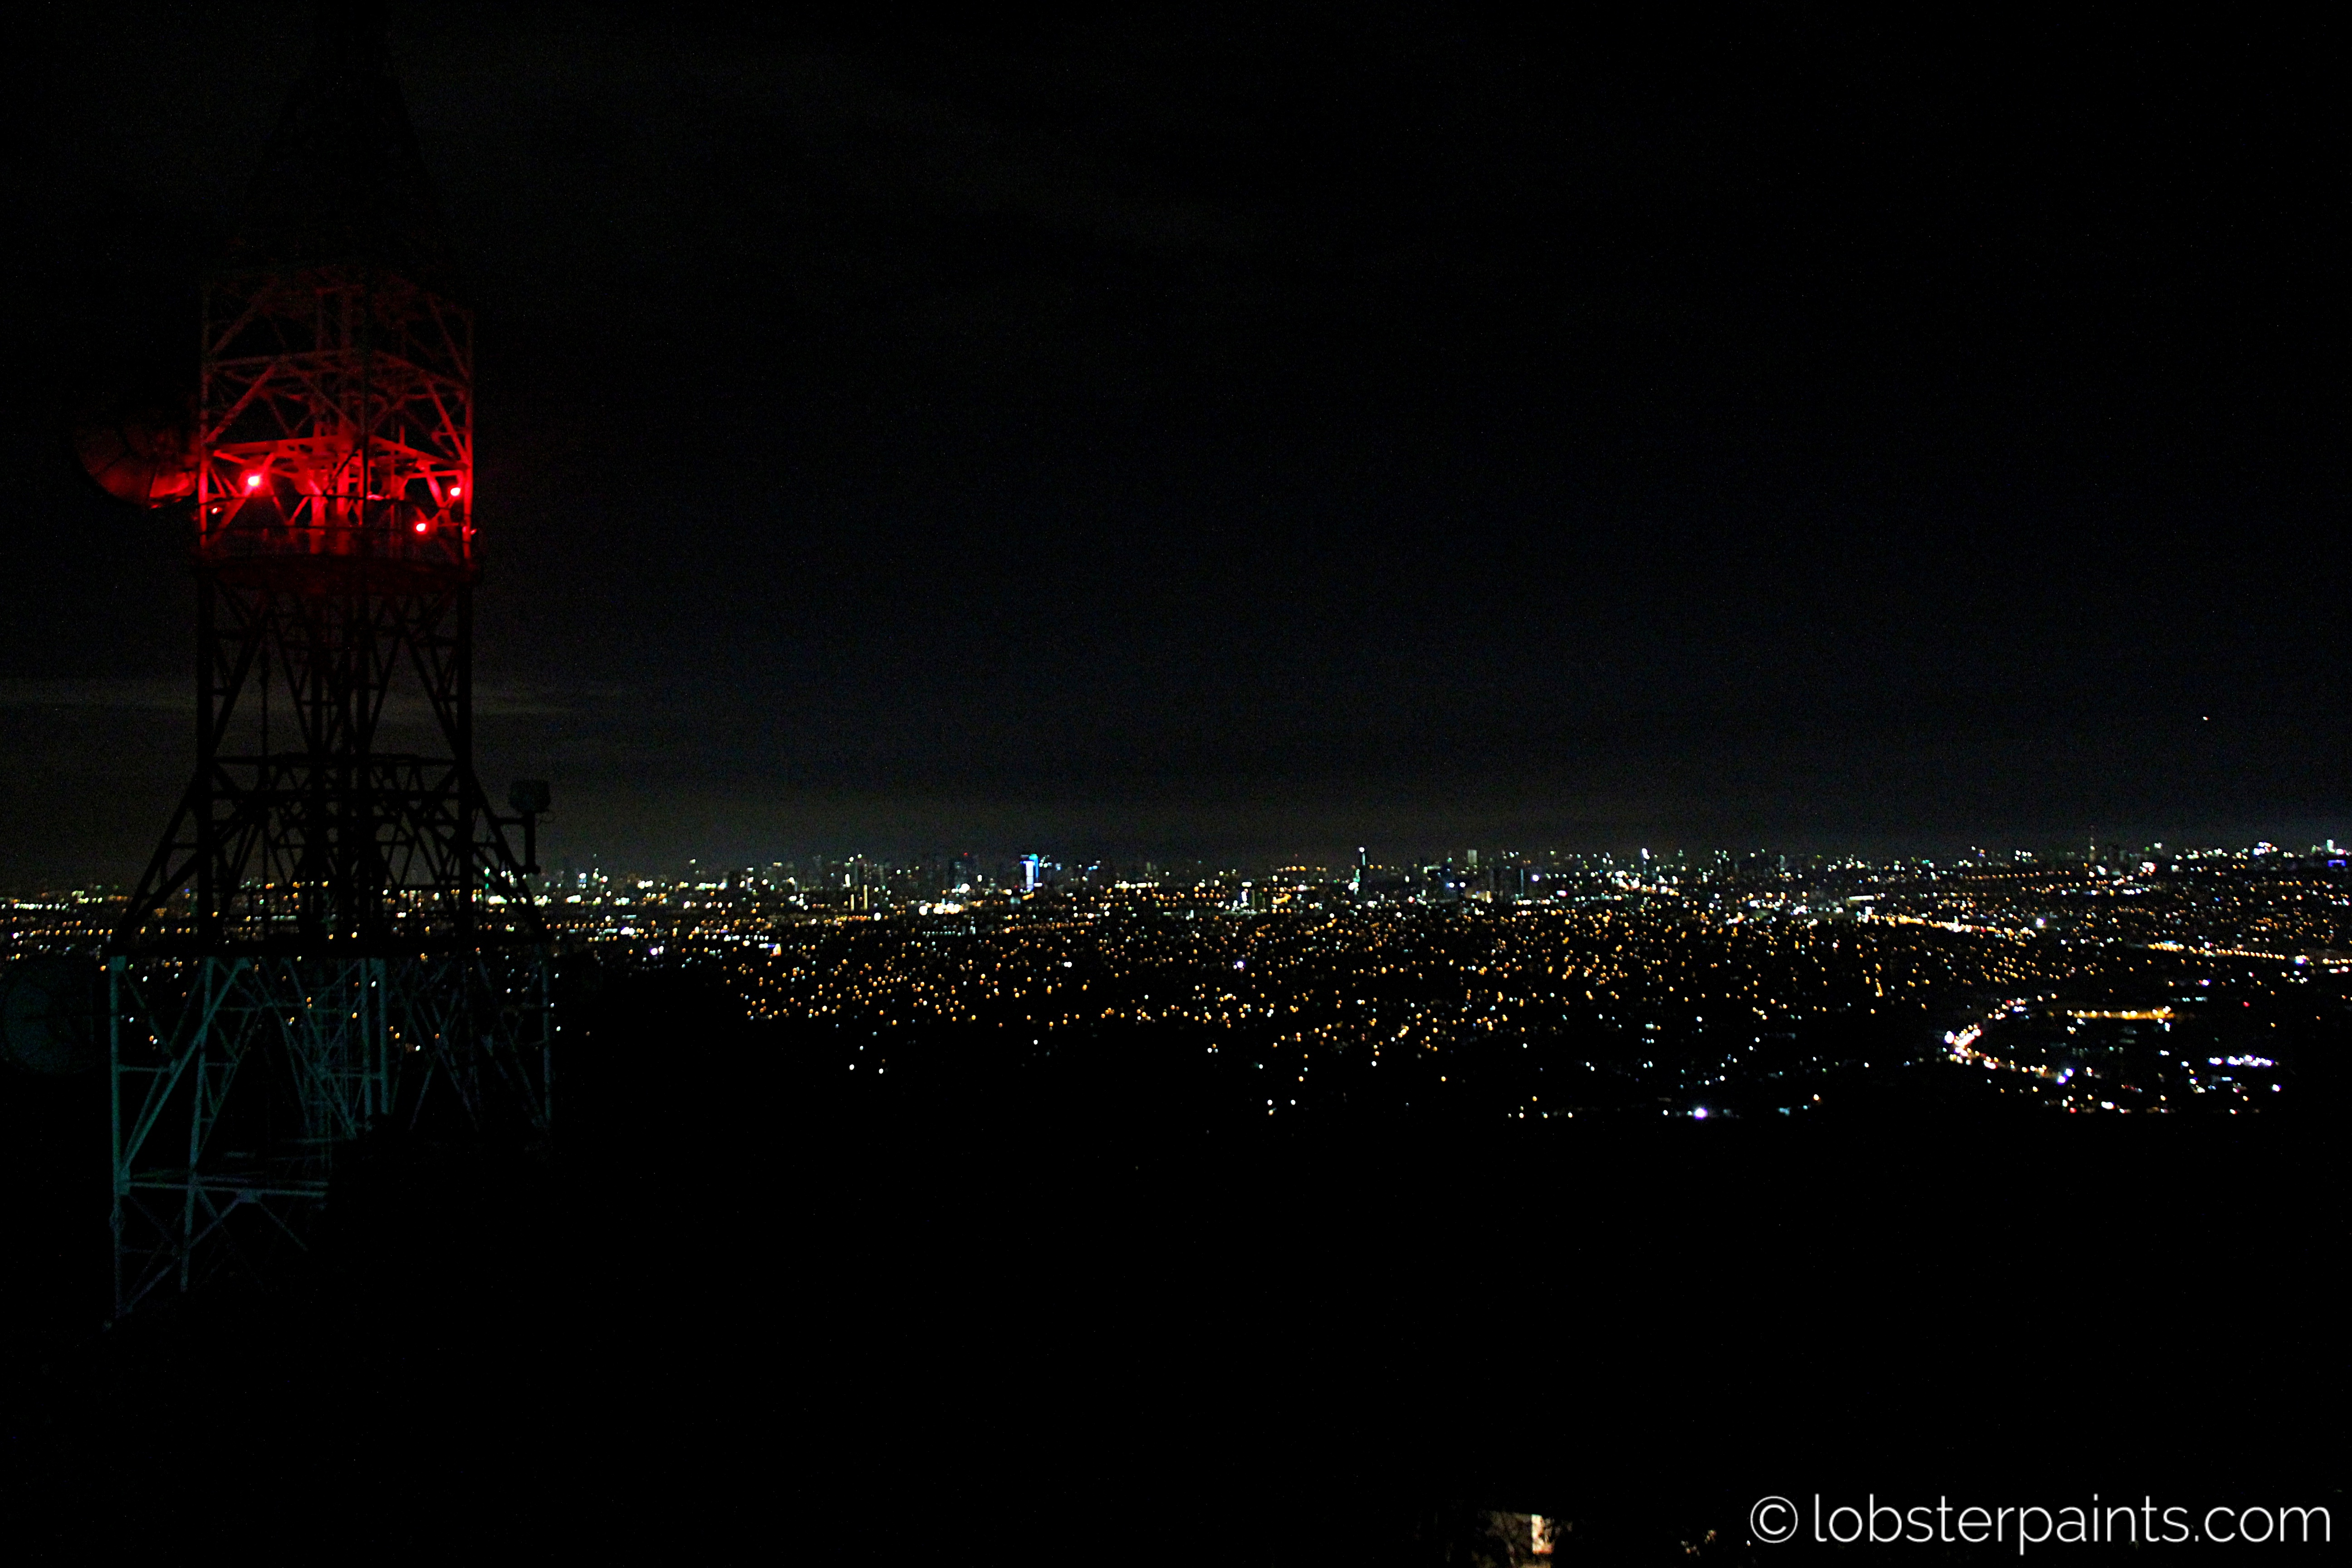 14 October 2015: Cloud 9 | Antipolo, Philippines